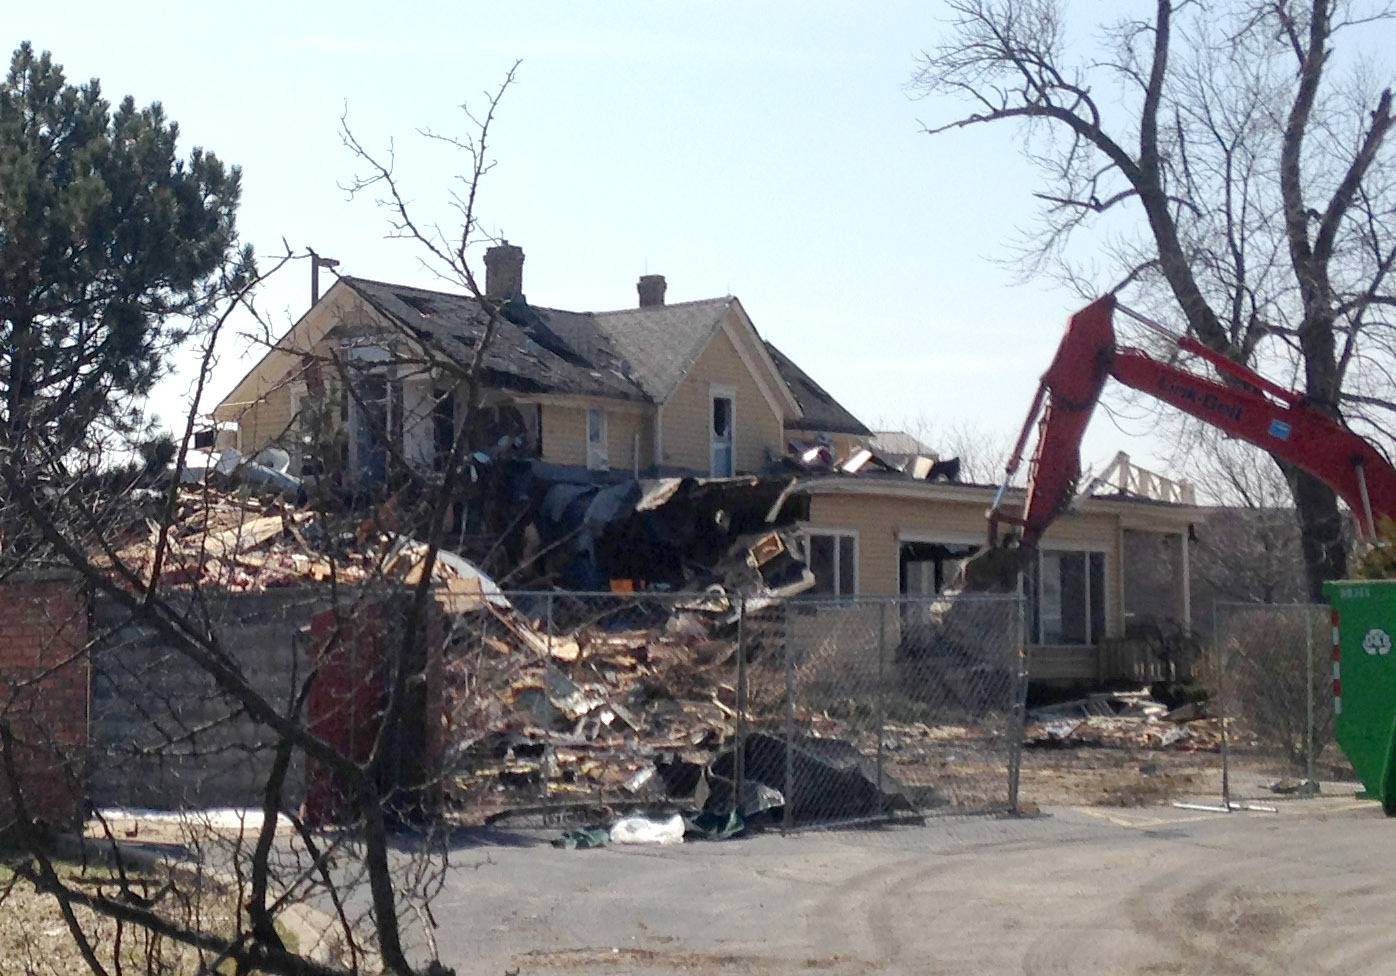 Demolition of Don Roth's Blackhawk restaurant in Wheeling began Friday. It closed in 2009 after a 40-year run as part of the village's Restaurant Row.